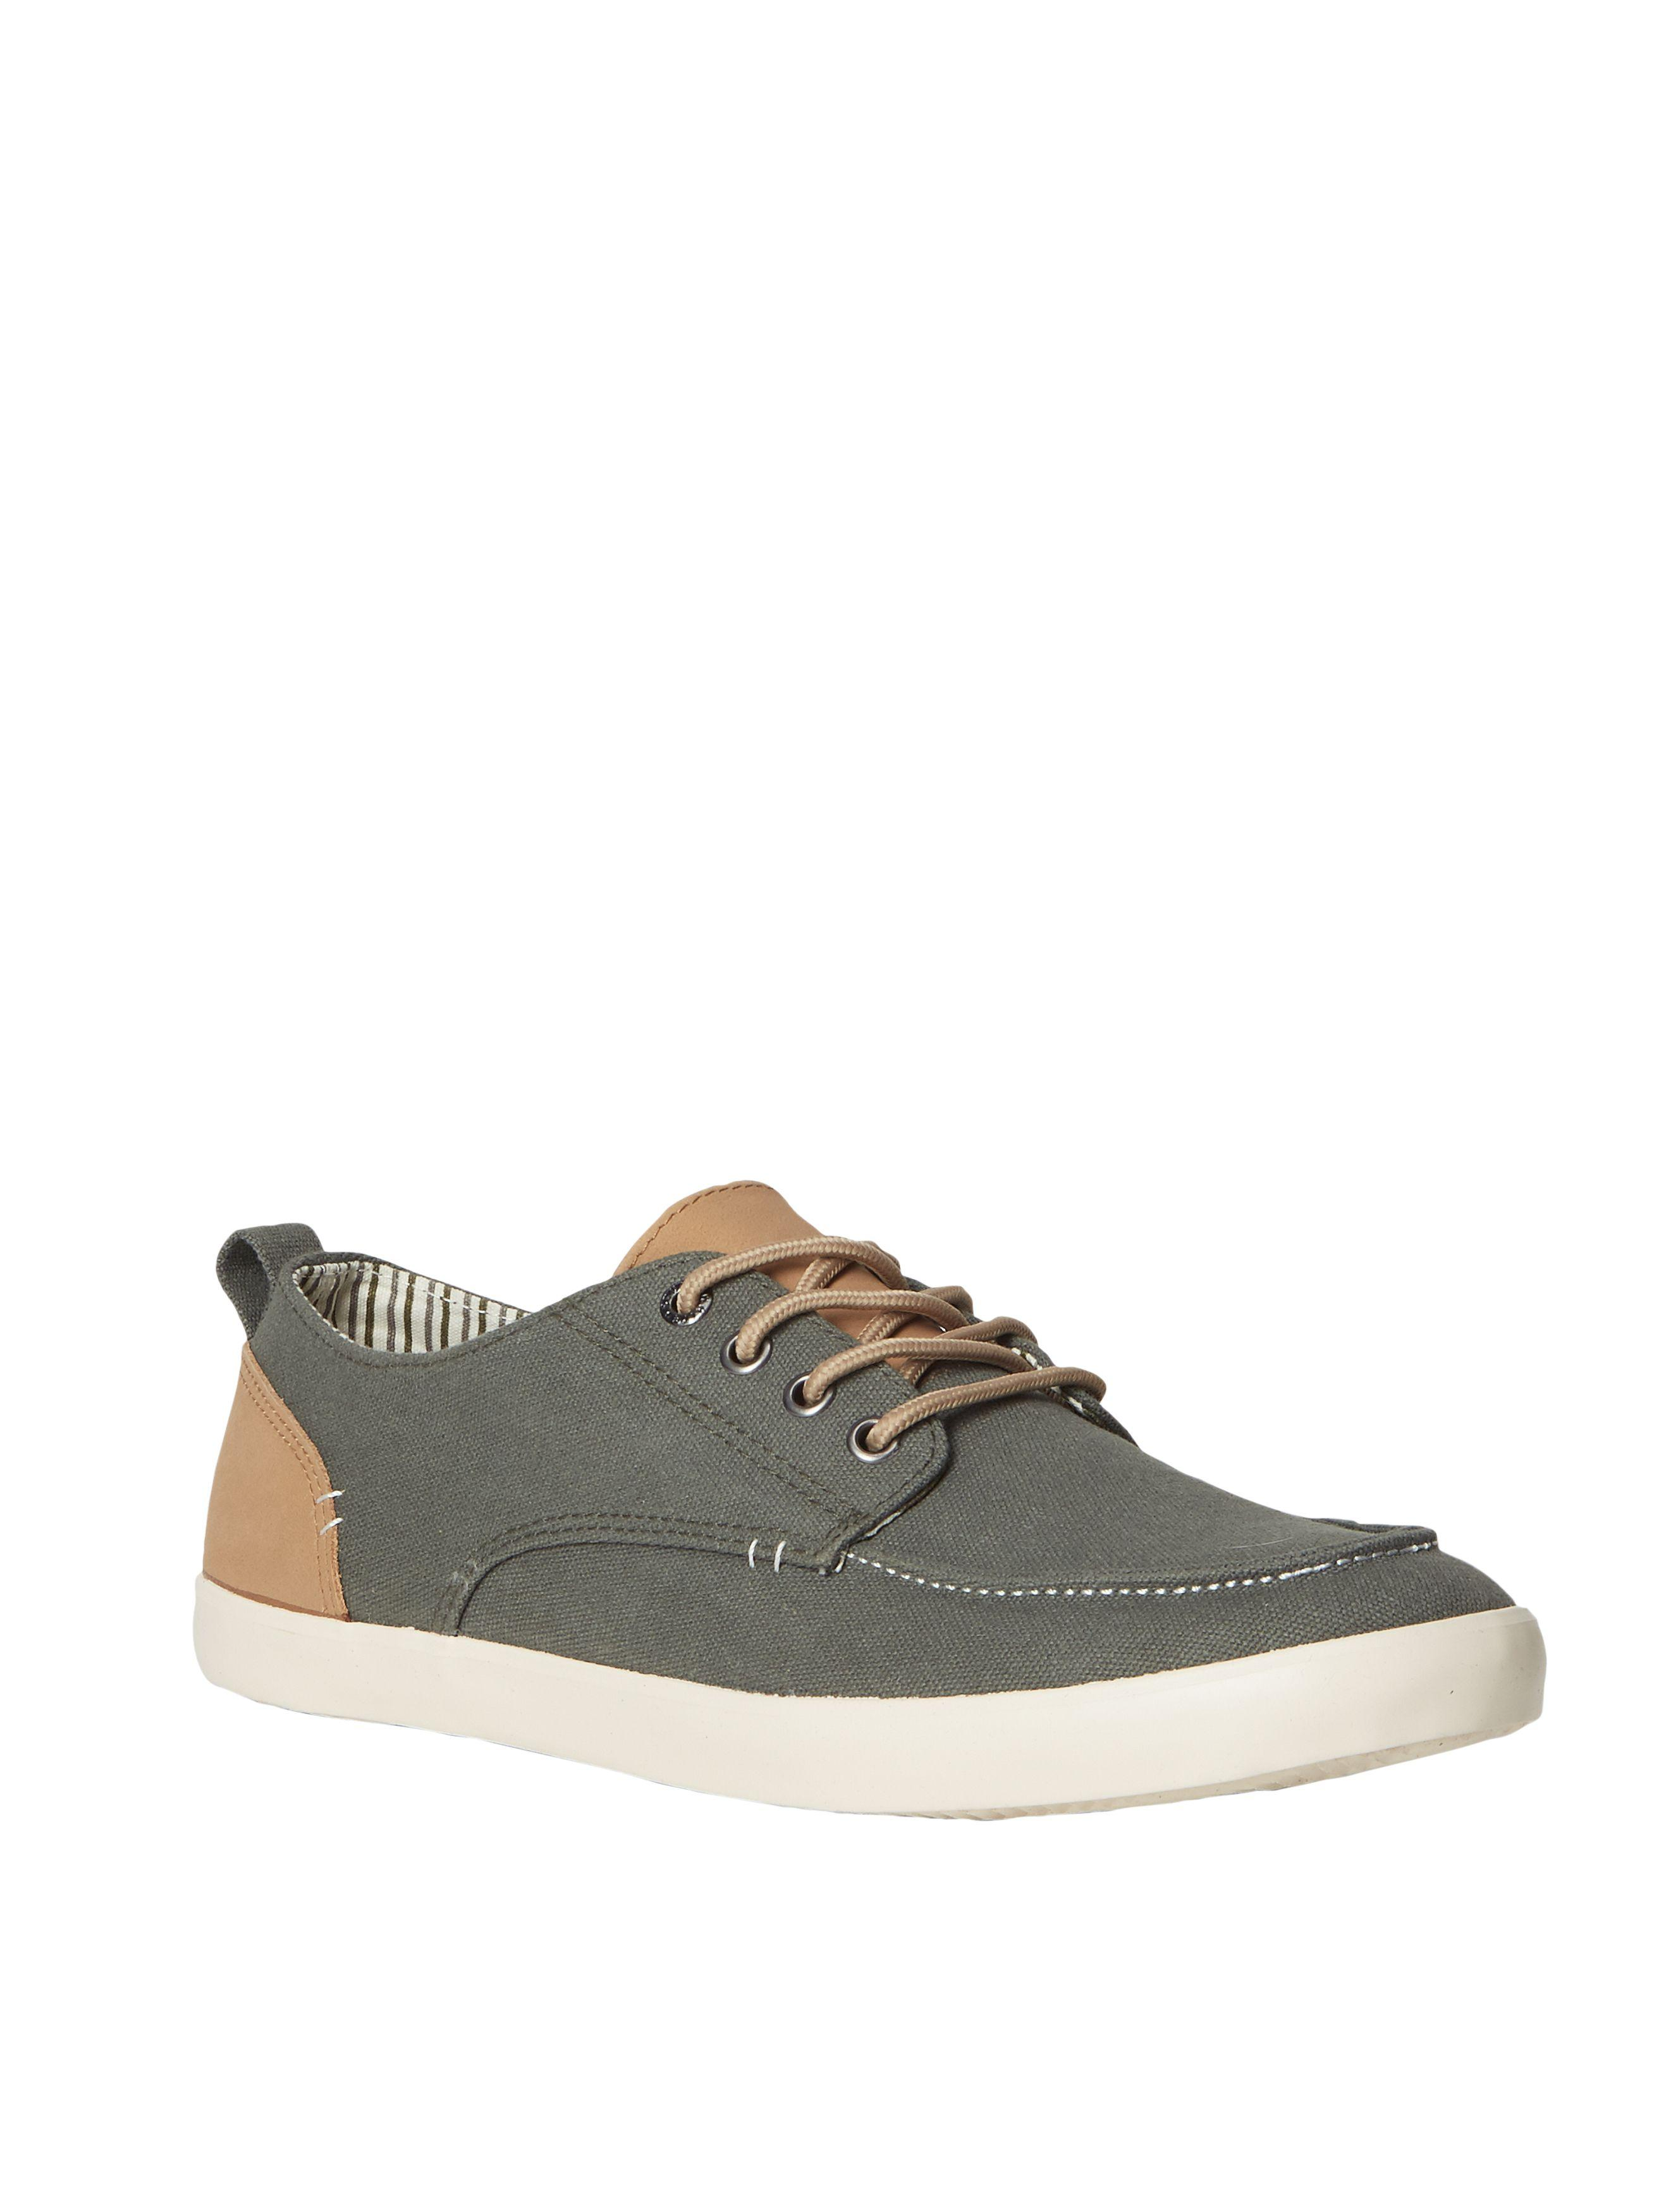 white stuff mens boat shoe trainer for lyst